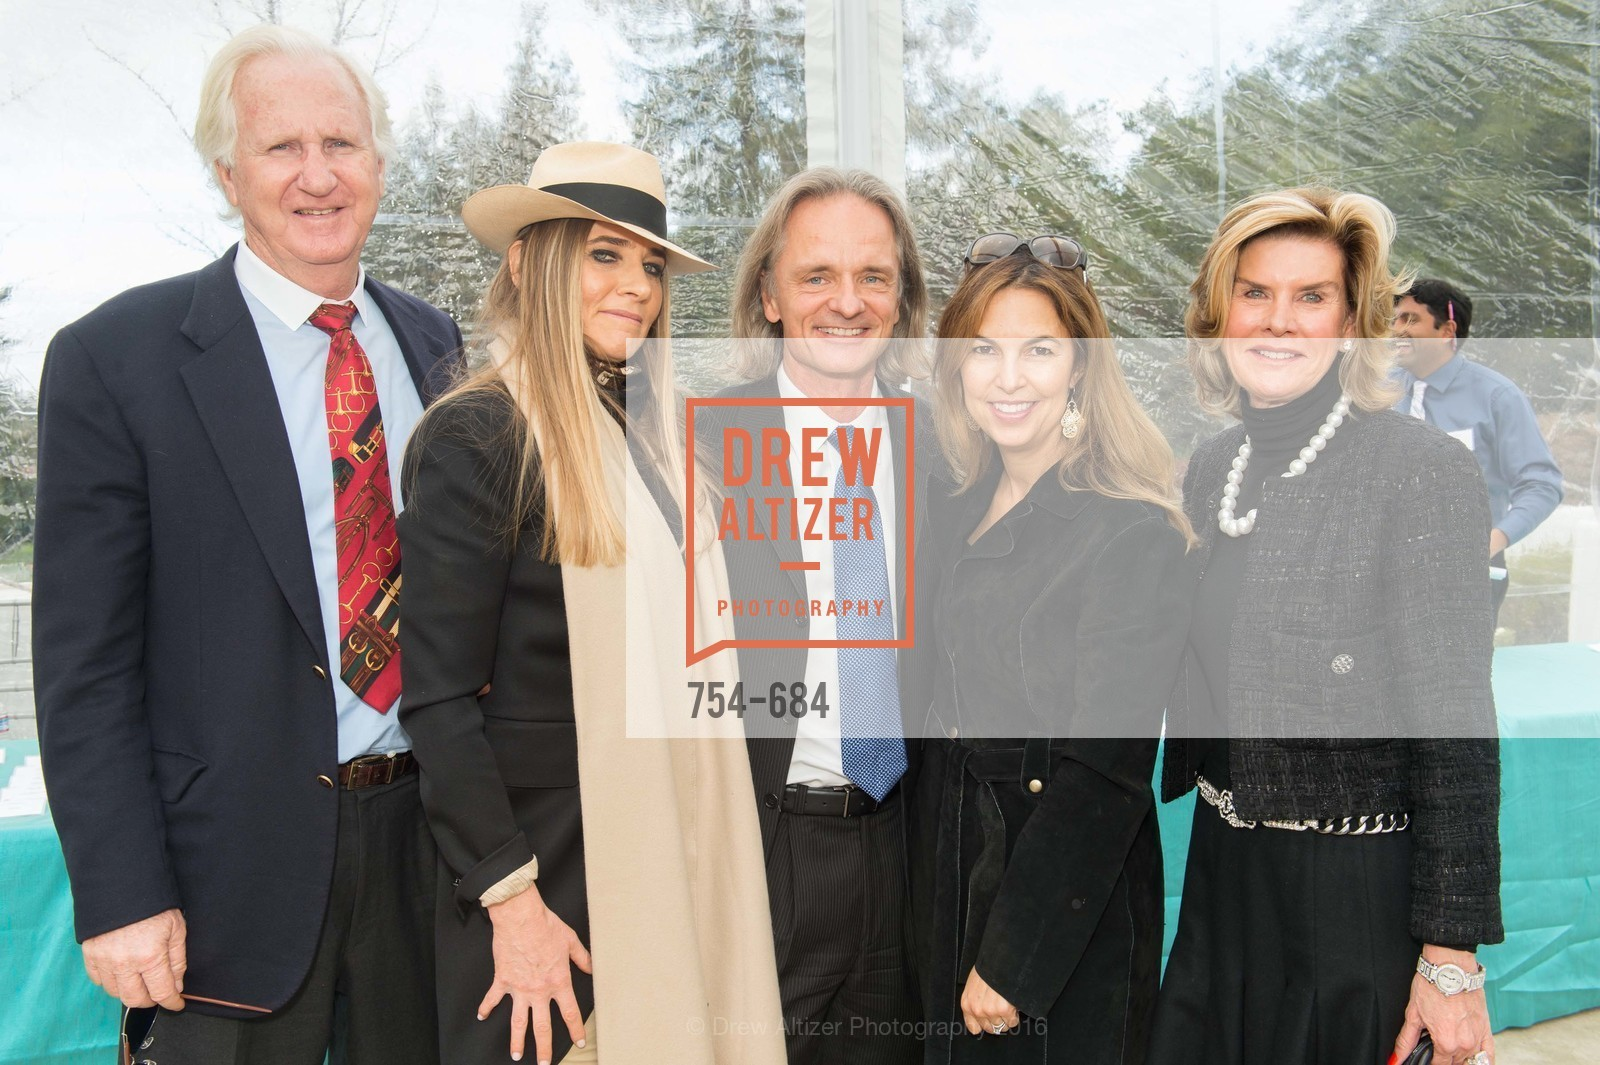 Trevor Lee, Jill Janger, Oliver Dorigo, Marcela Dorigo, Keri Craig-Lee, Under One Umbrella, Sharon Heights Golf and Country Club, January 13th, 2016,Drew Altizer, Drew Altizer Photography, full-service agency, private events, San Francisco photographer, photographer california